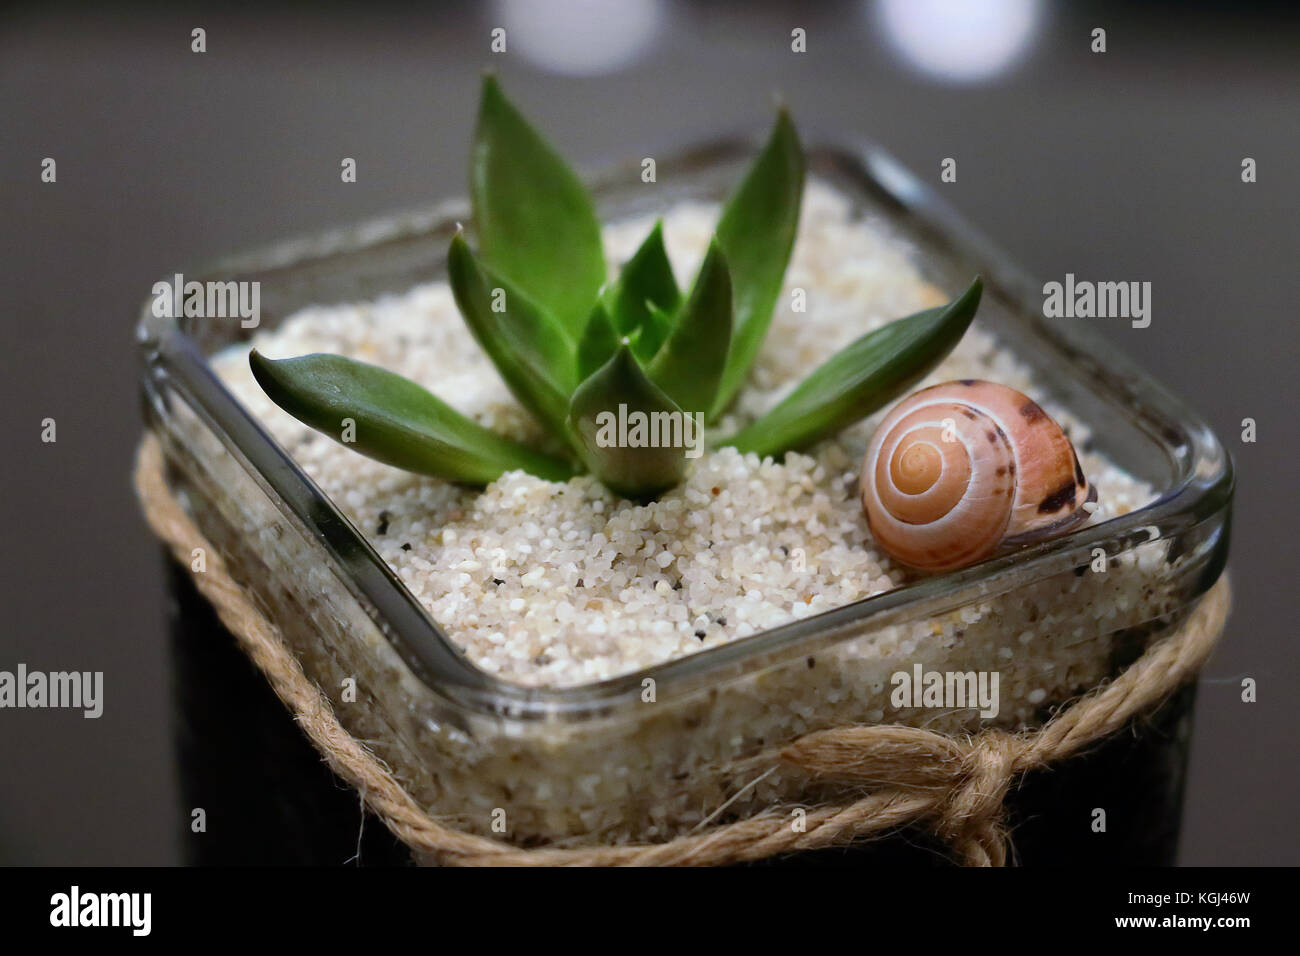 Succulent in pot with sand and a snail shell - Stock Image